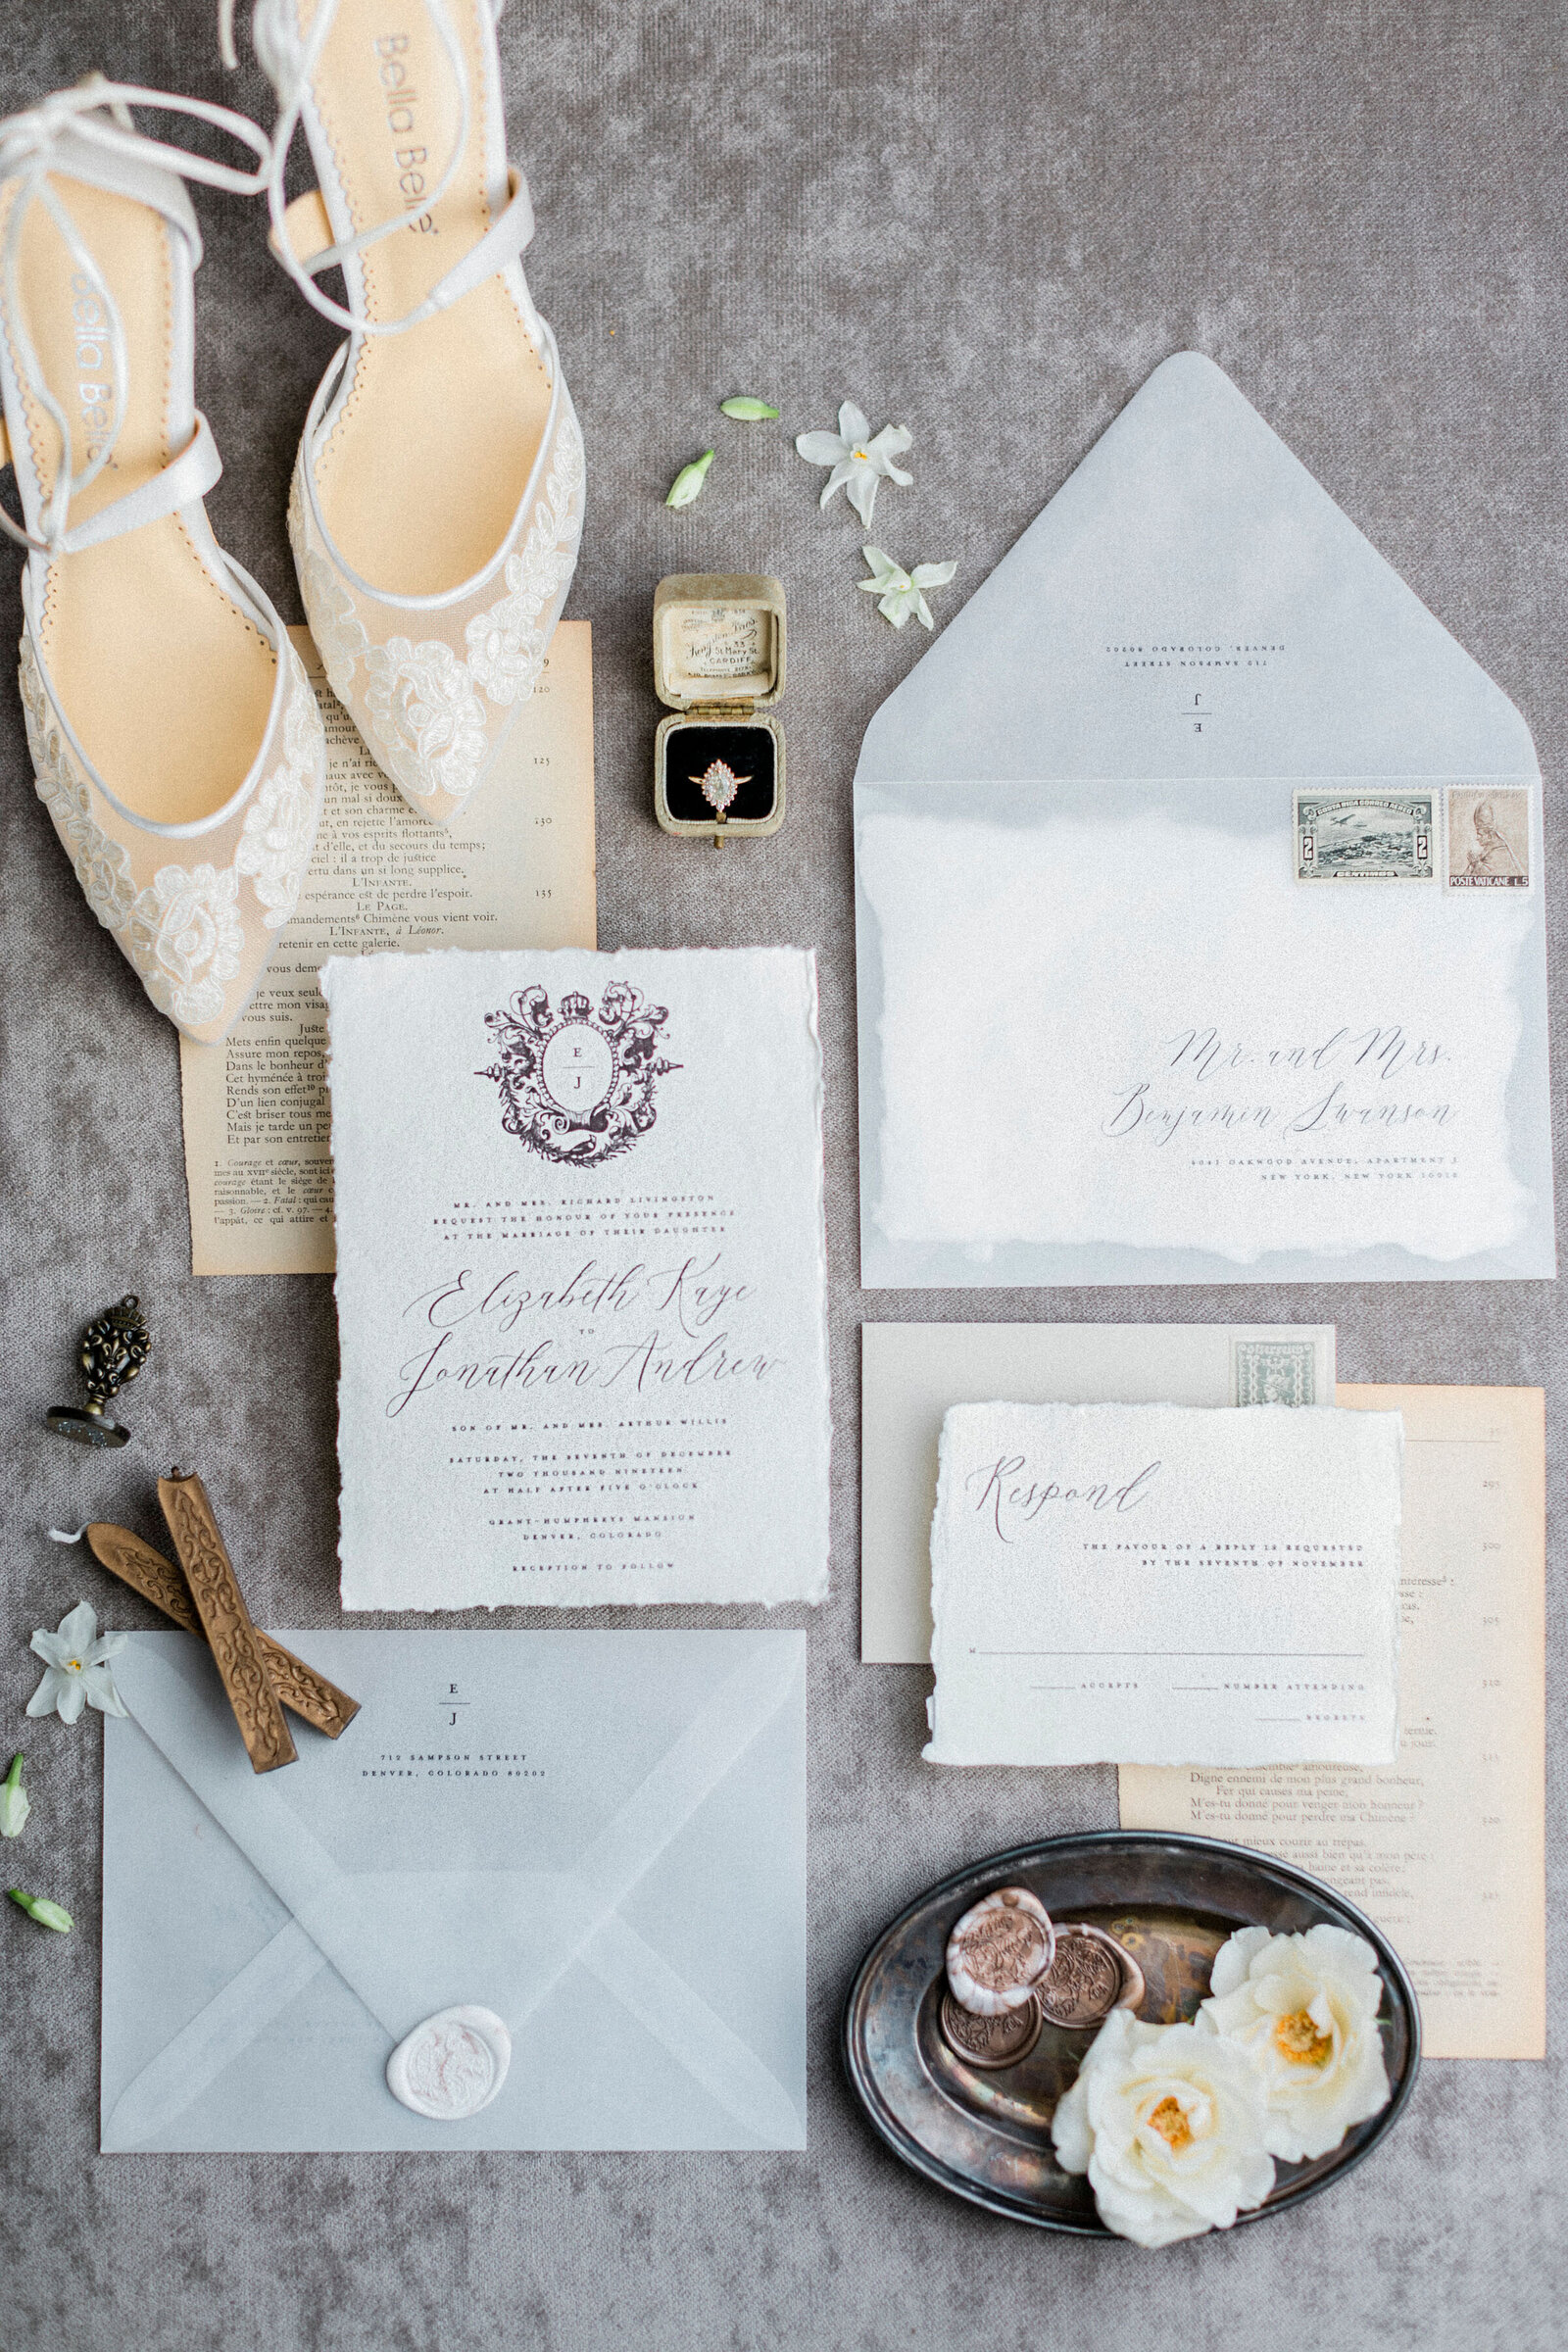 Wedding Invitations with Flowers